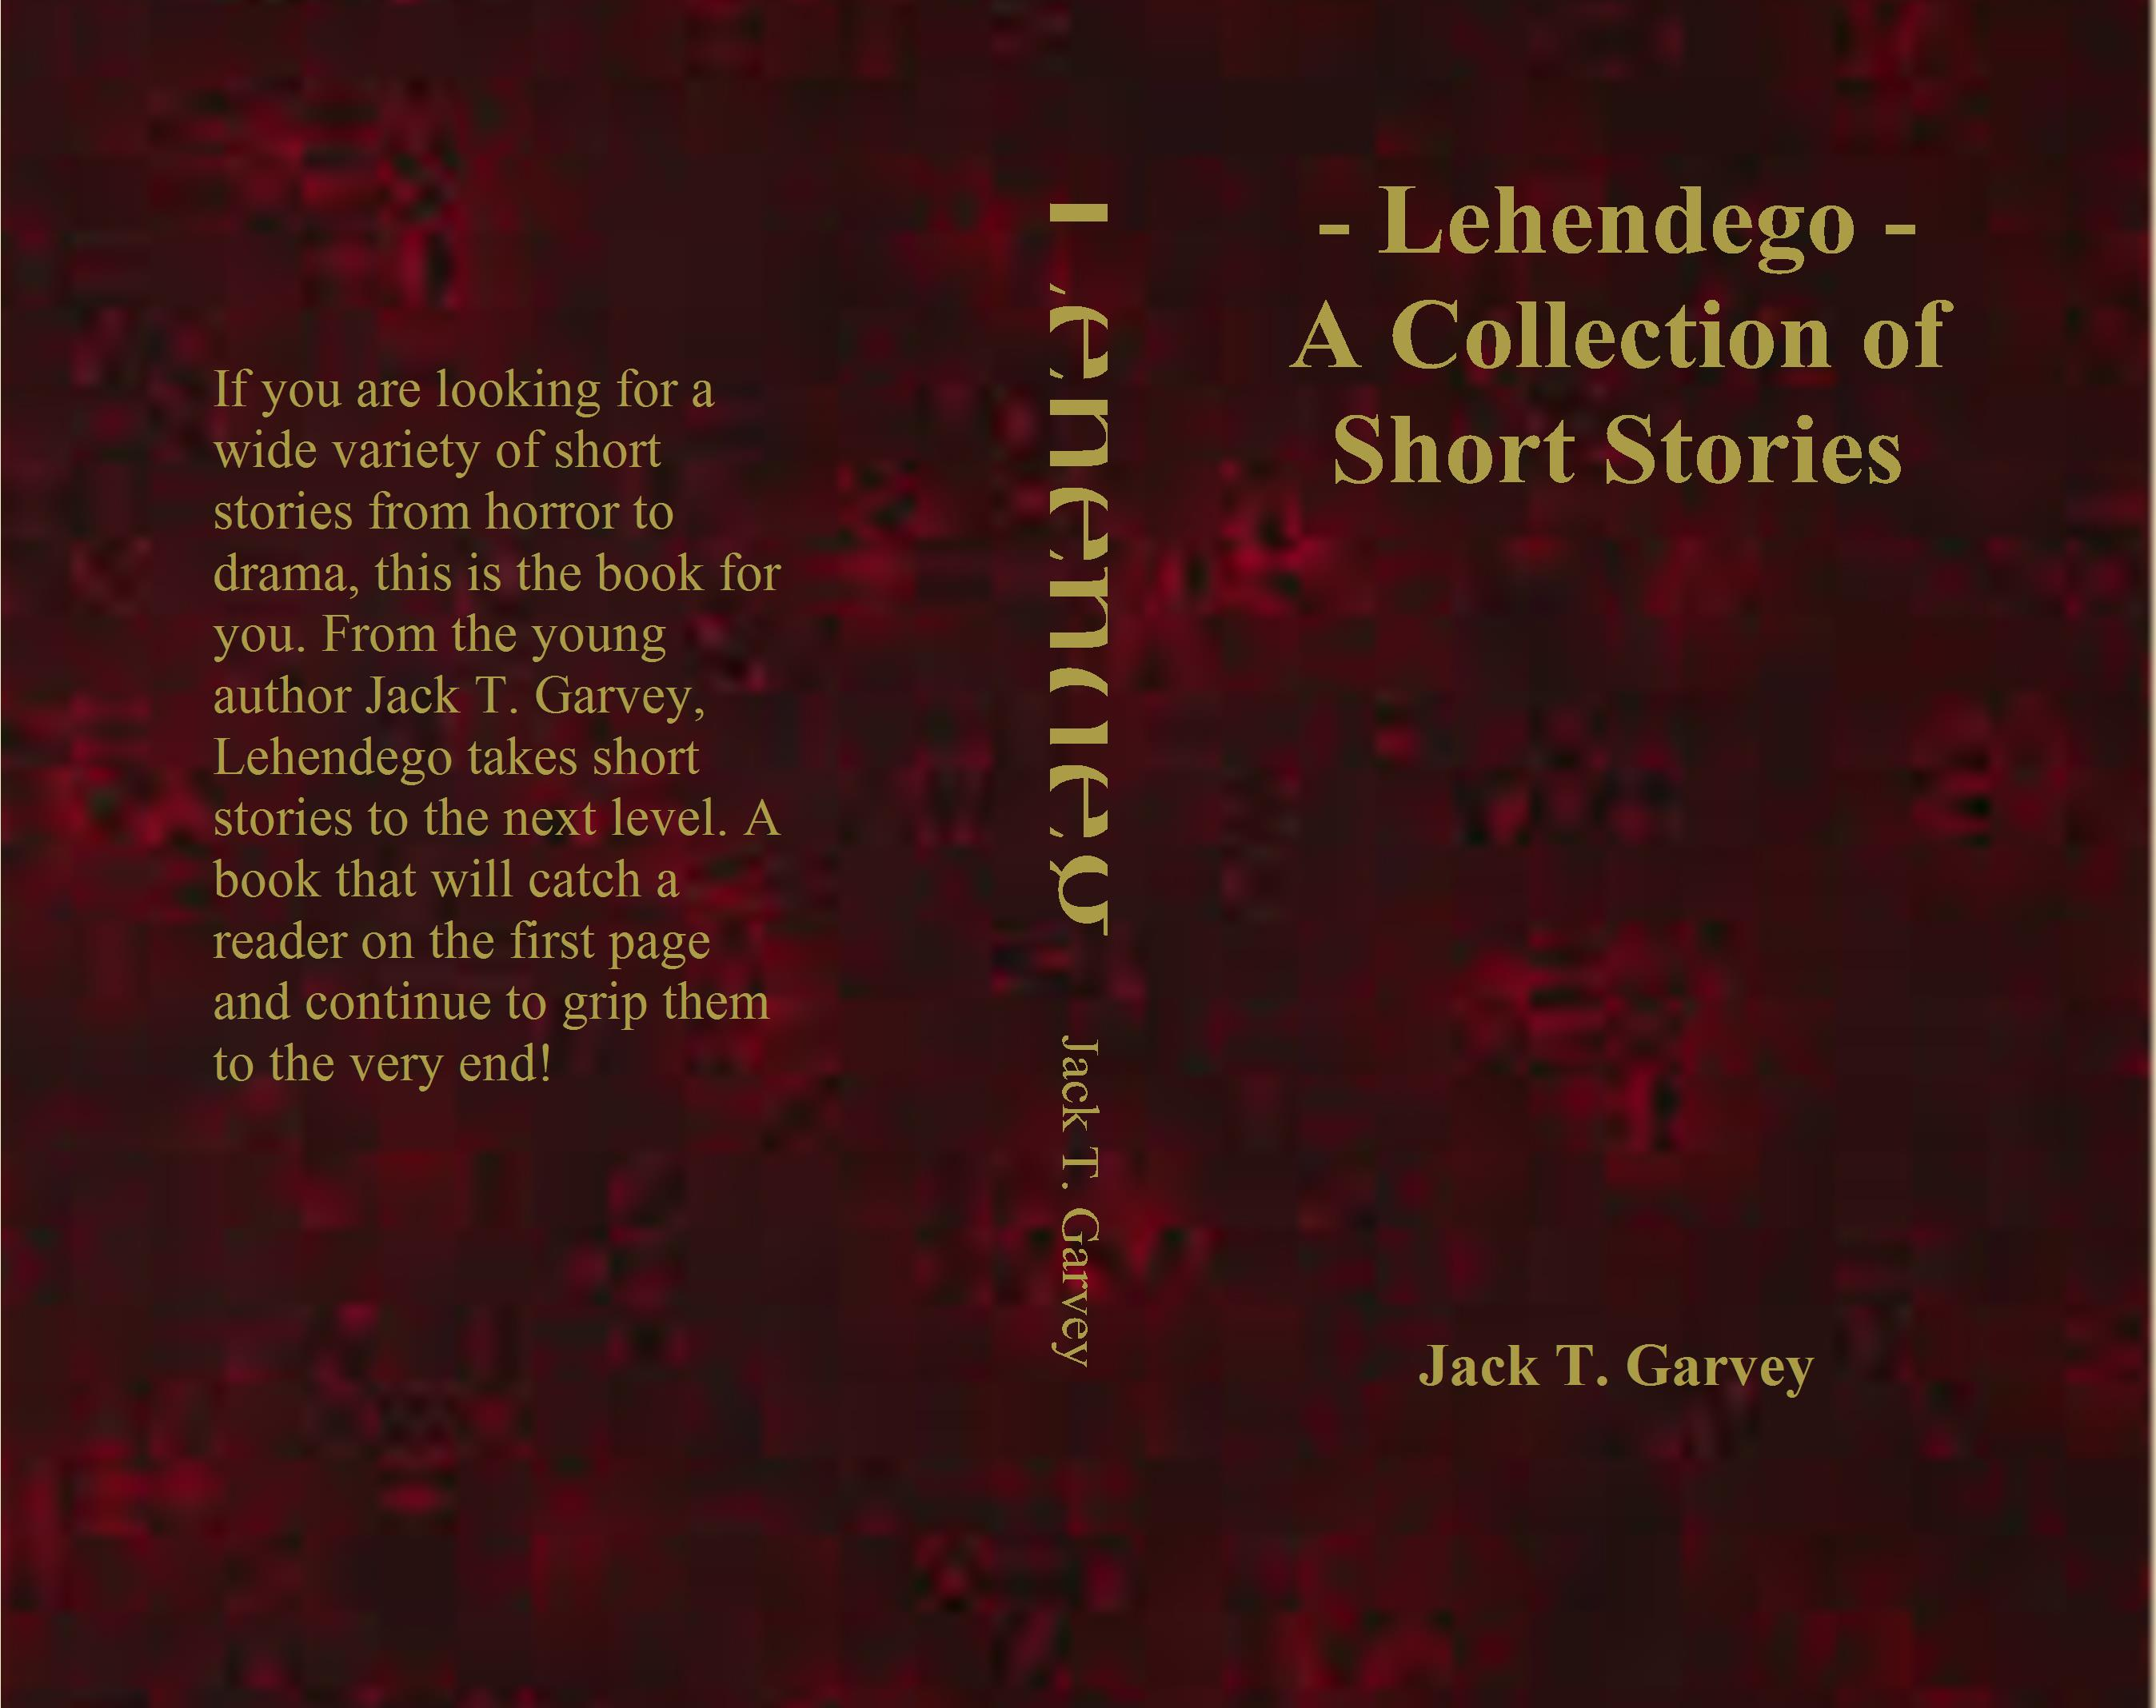 - Lehendego - A Collection of Short Stories cover image